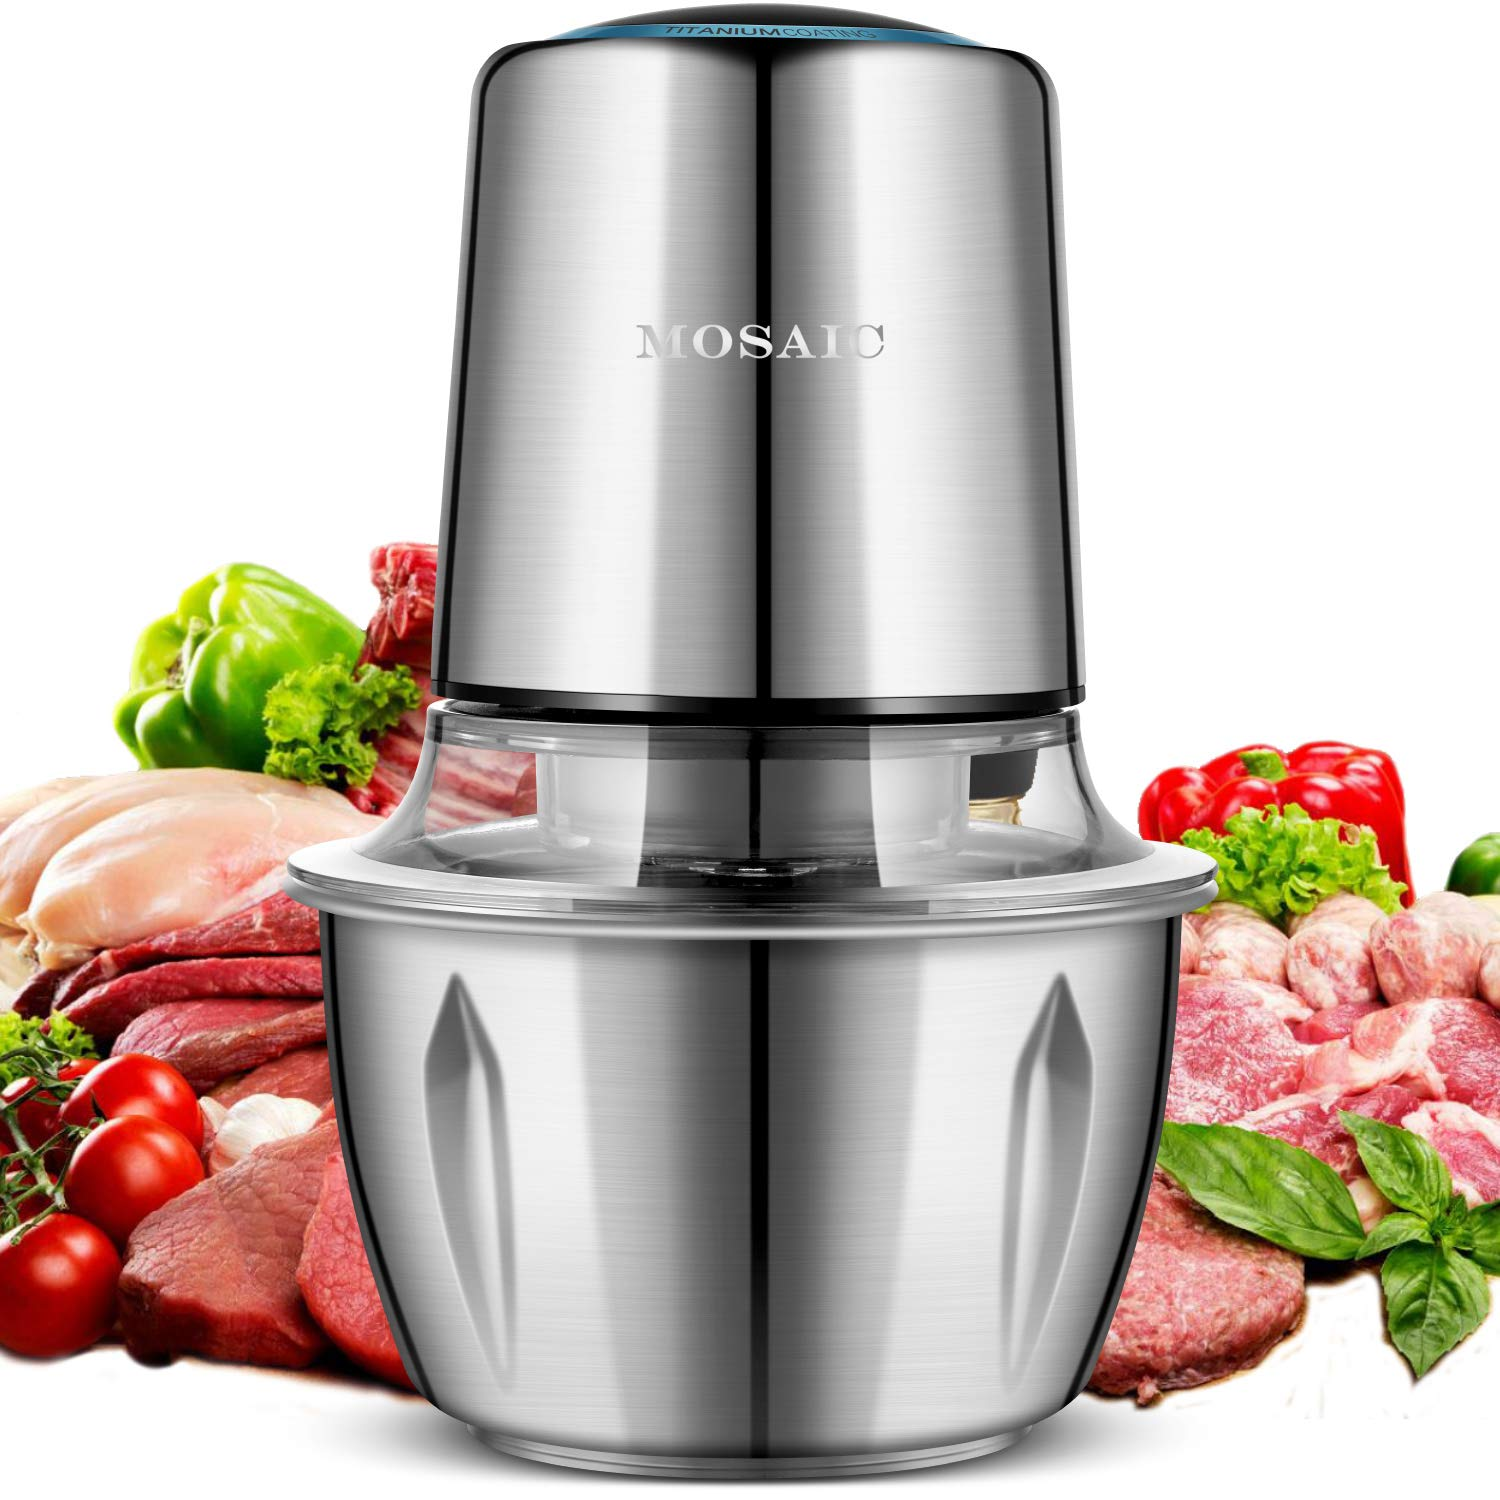 Electric Food Chopper, MOSAIC 400W Meat Grinder with 4 Titanium Coating Blades and 5-Cup Stainless Steel Bowl, 2 Speed Kitchen Processor and Mincer for Vegetable Fruit Cheese and Nuts